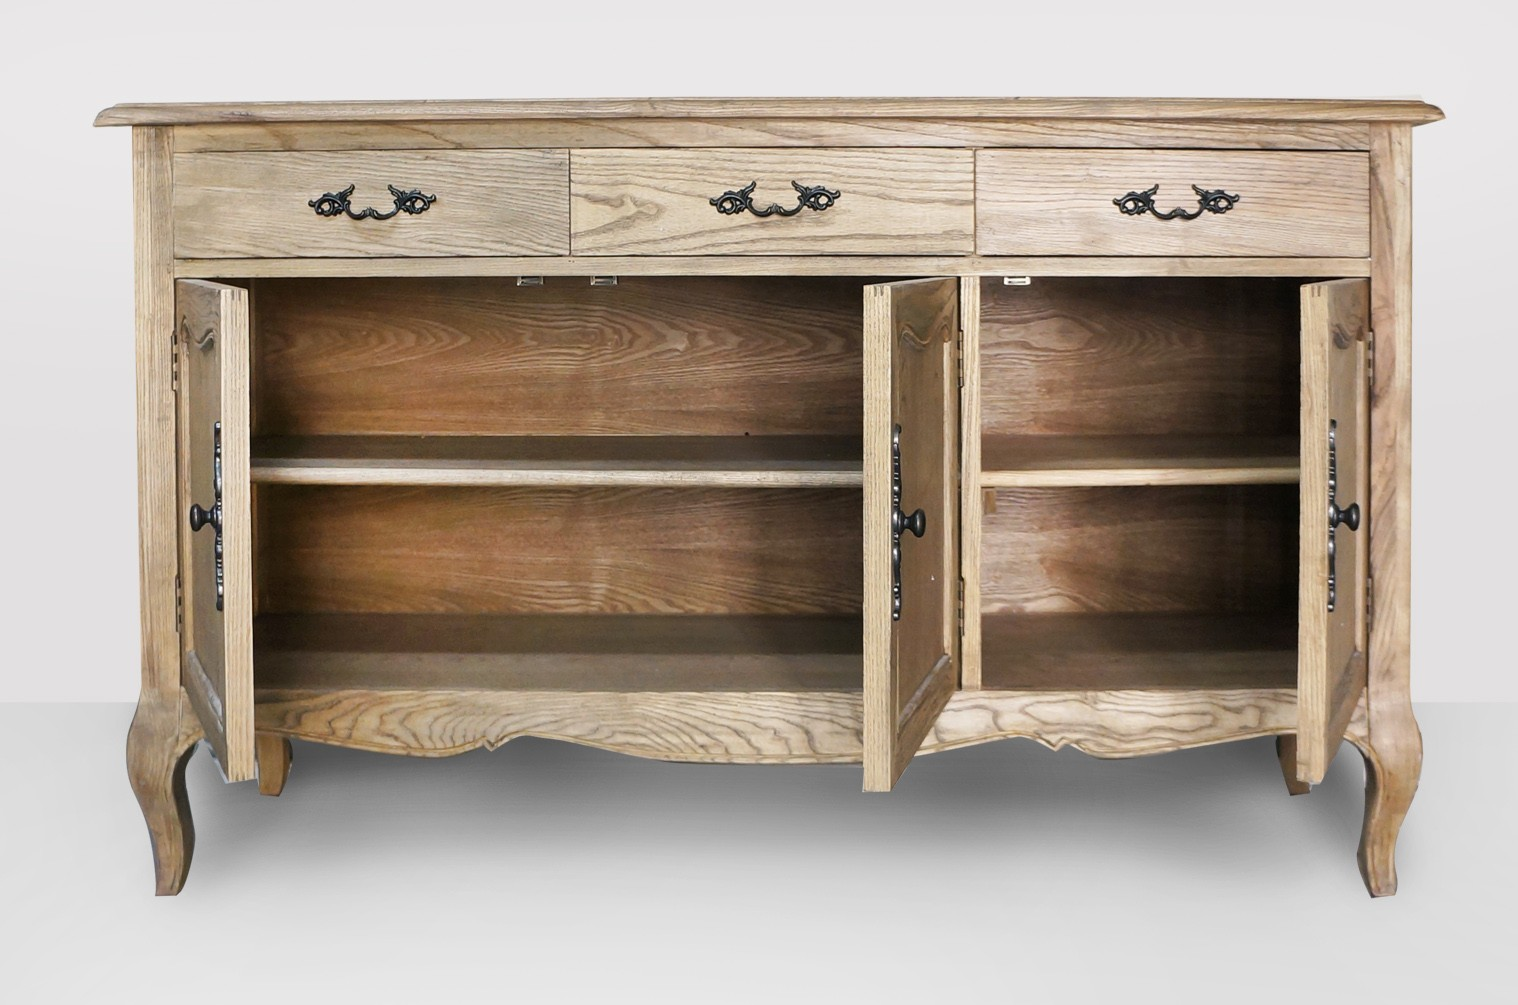 French furniture - La Joie Living Is One Of The Most Comprehensive Ranges Of French Provincial Furniture Inspired Natural Oak French Furniture Available Today